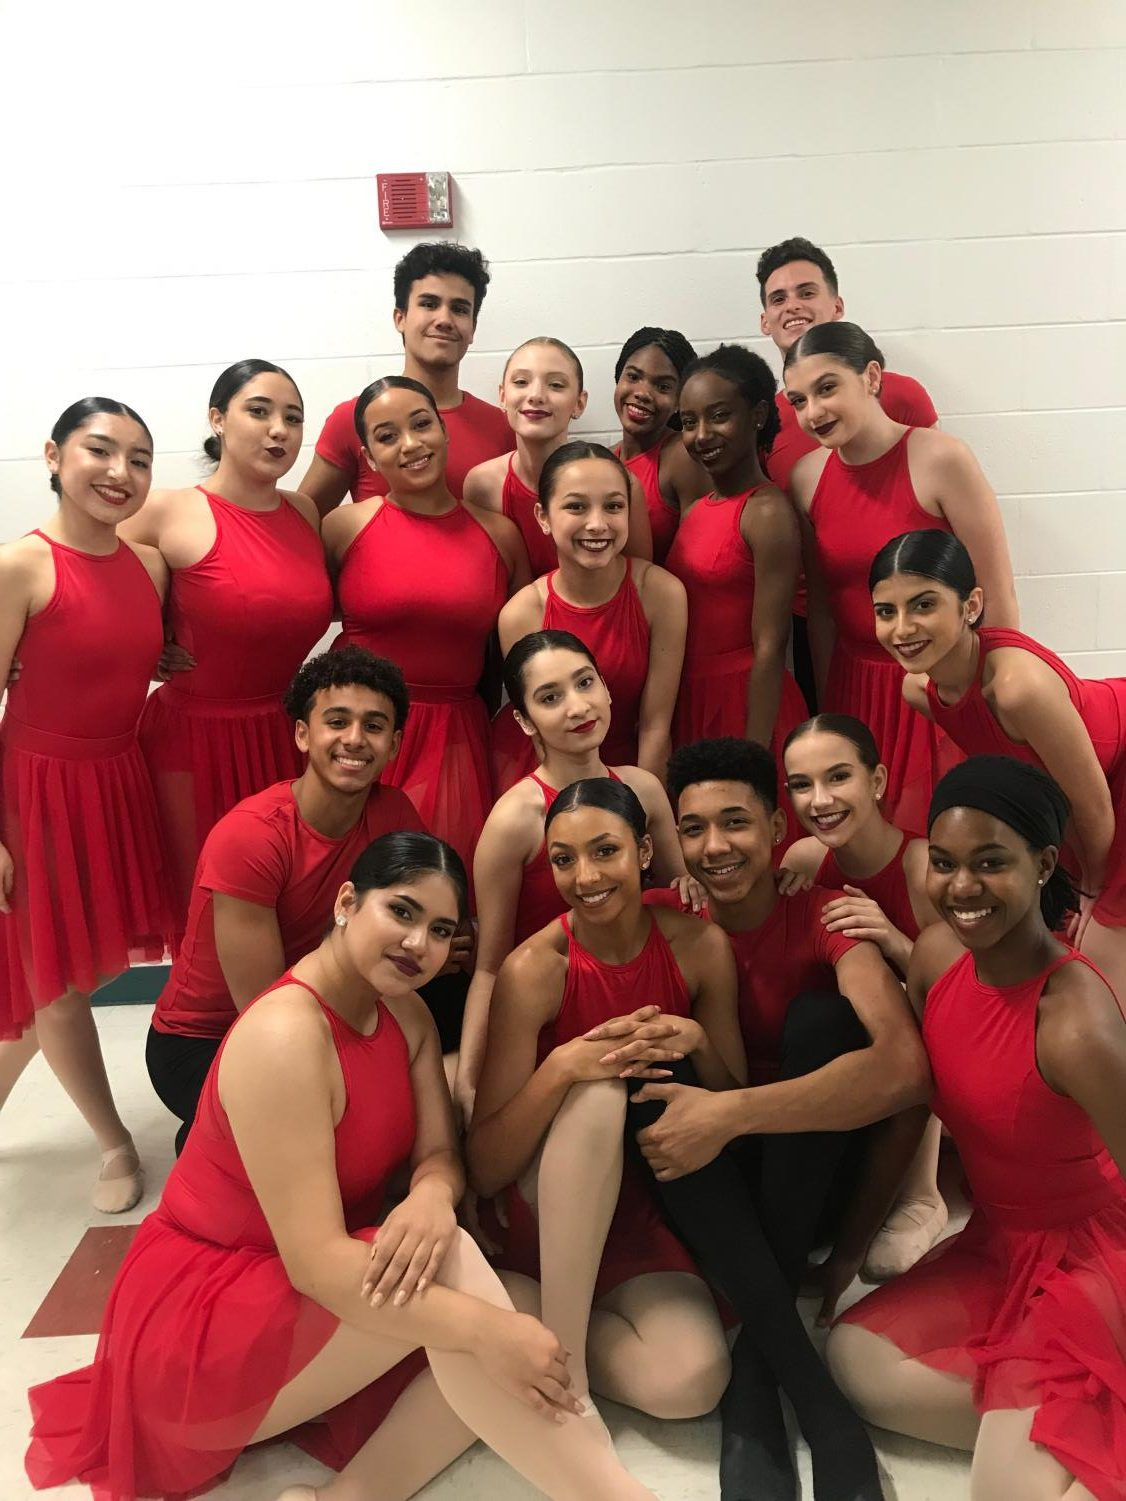 The Osceola County School for the Arts dancers.